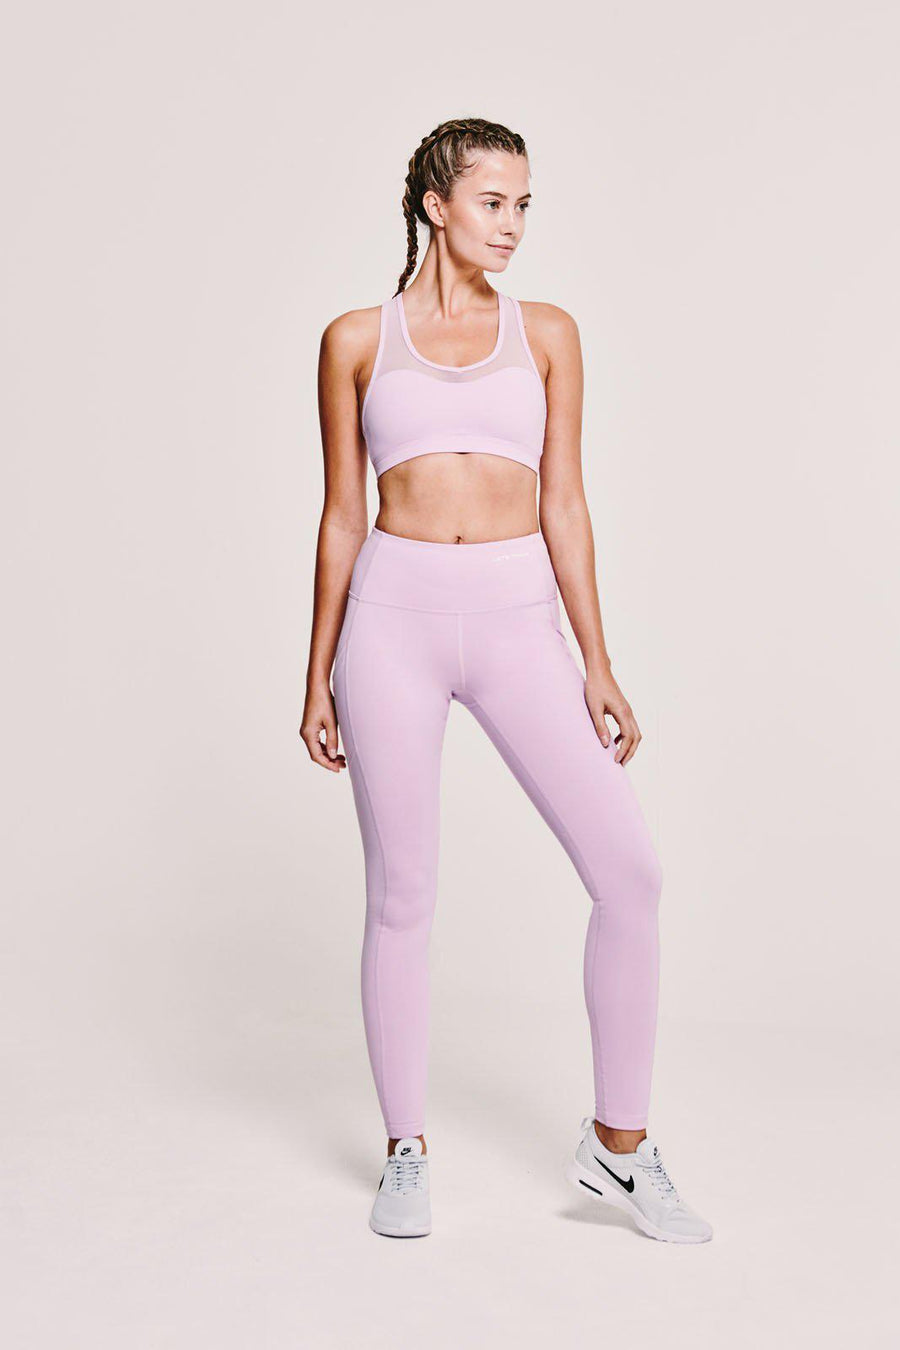 Legging in Lilac